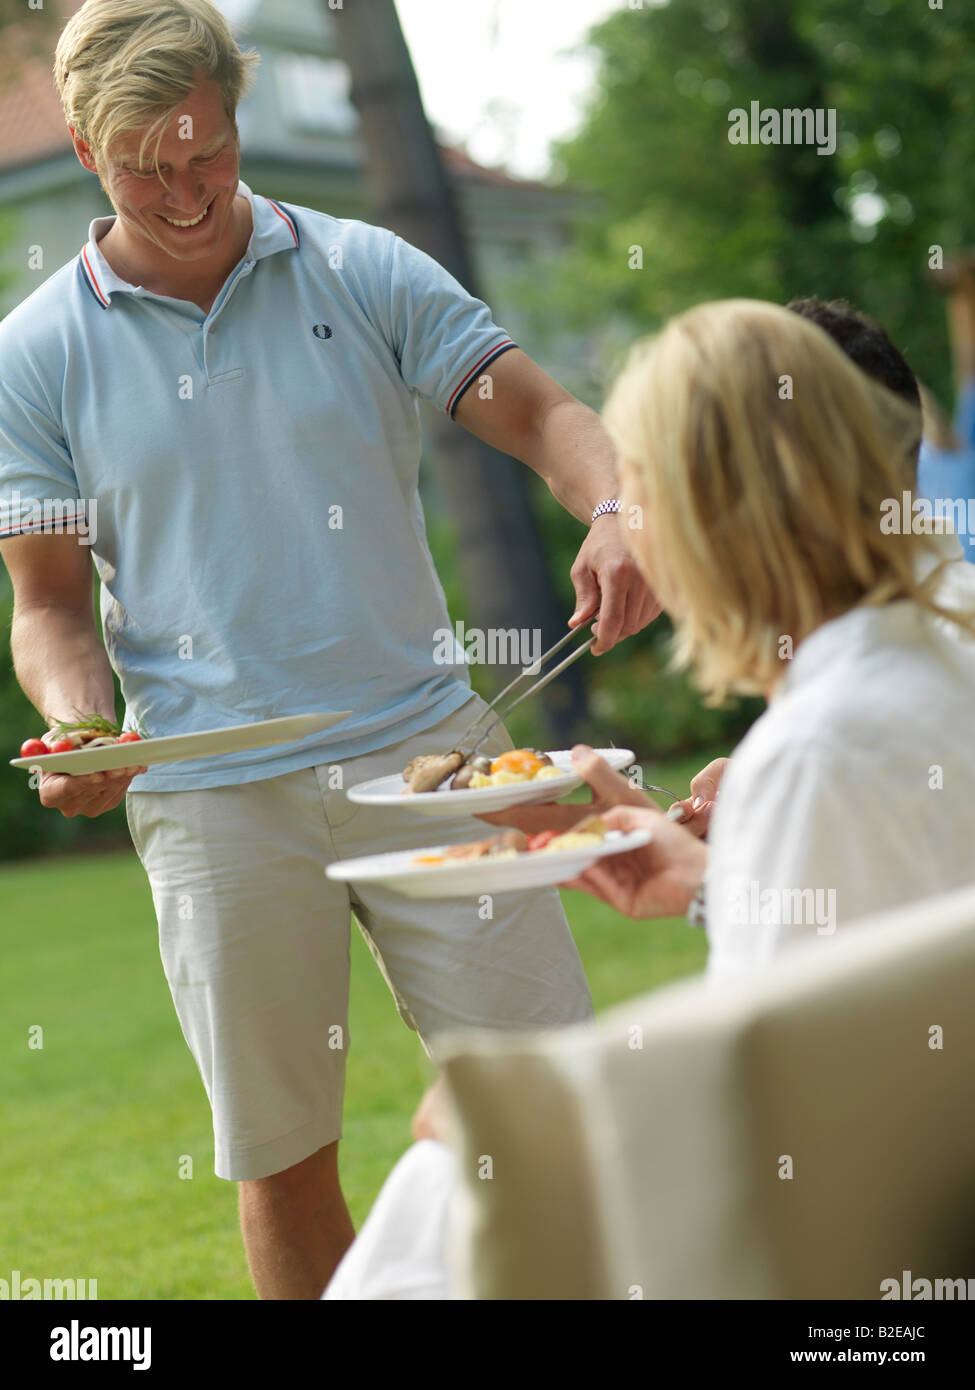 Man serving food to his friends at a garden party - Stock Image